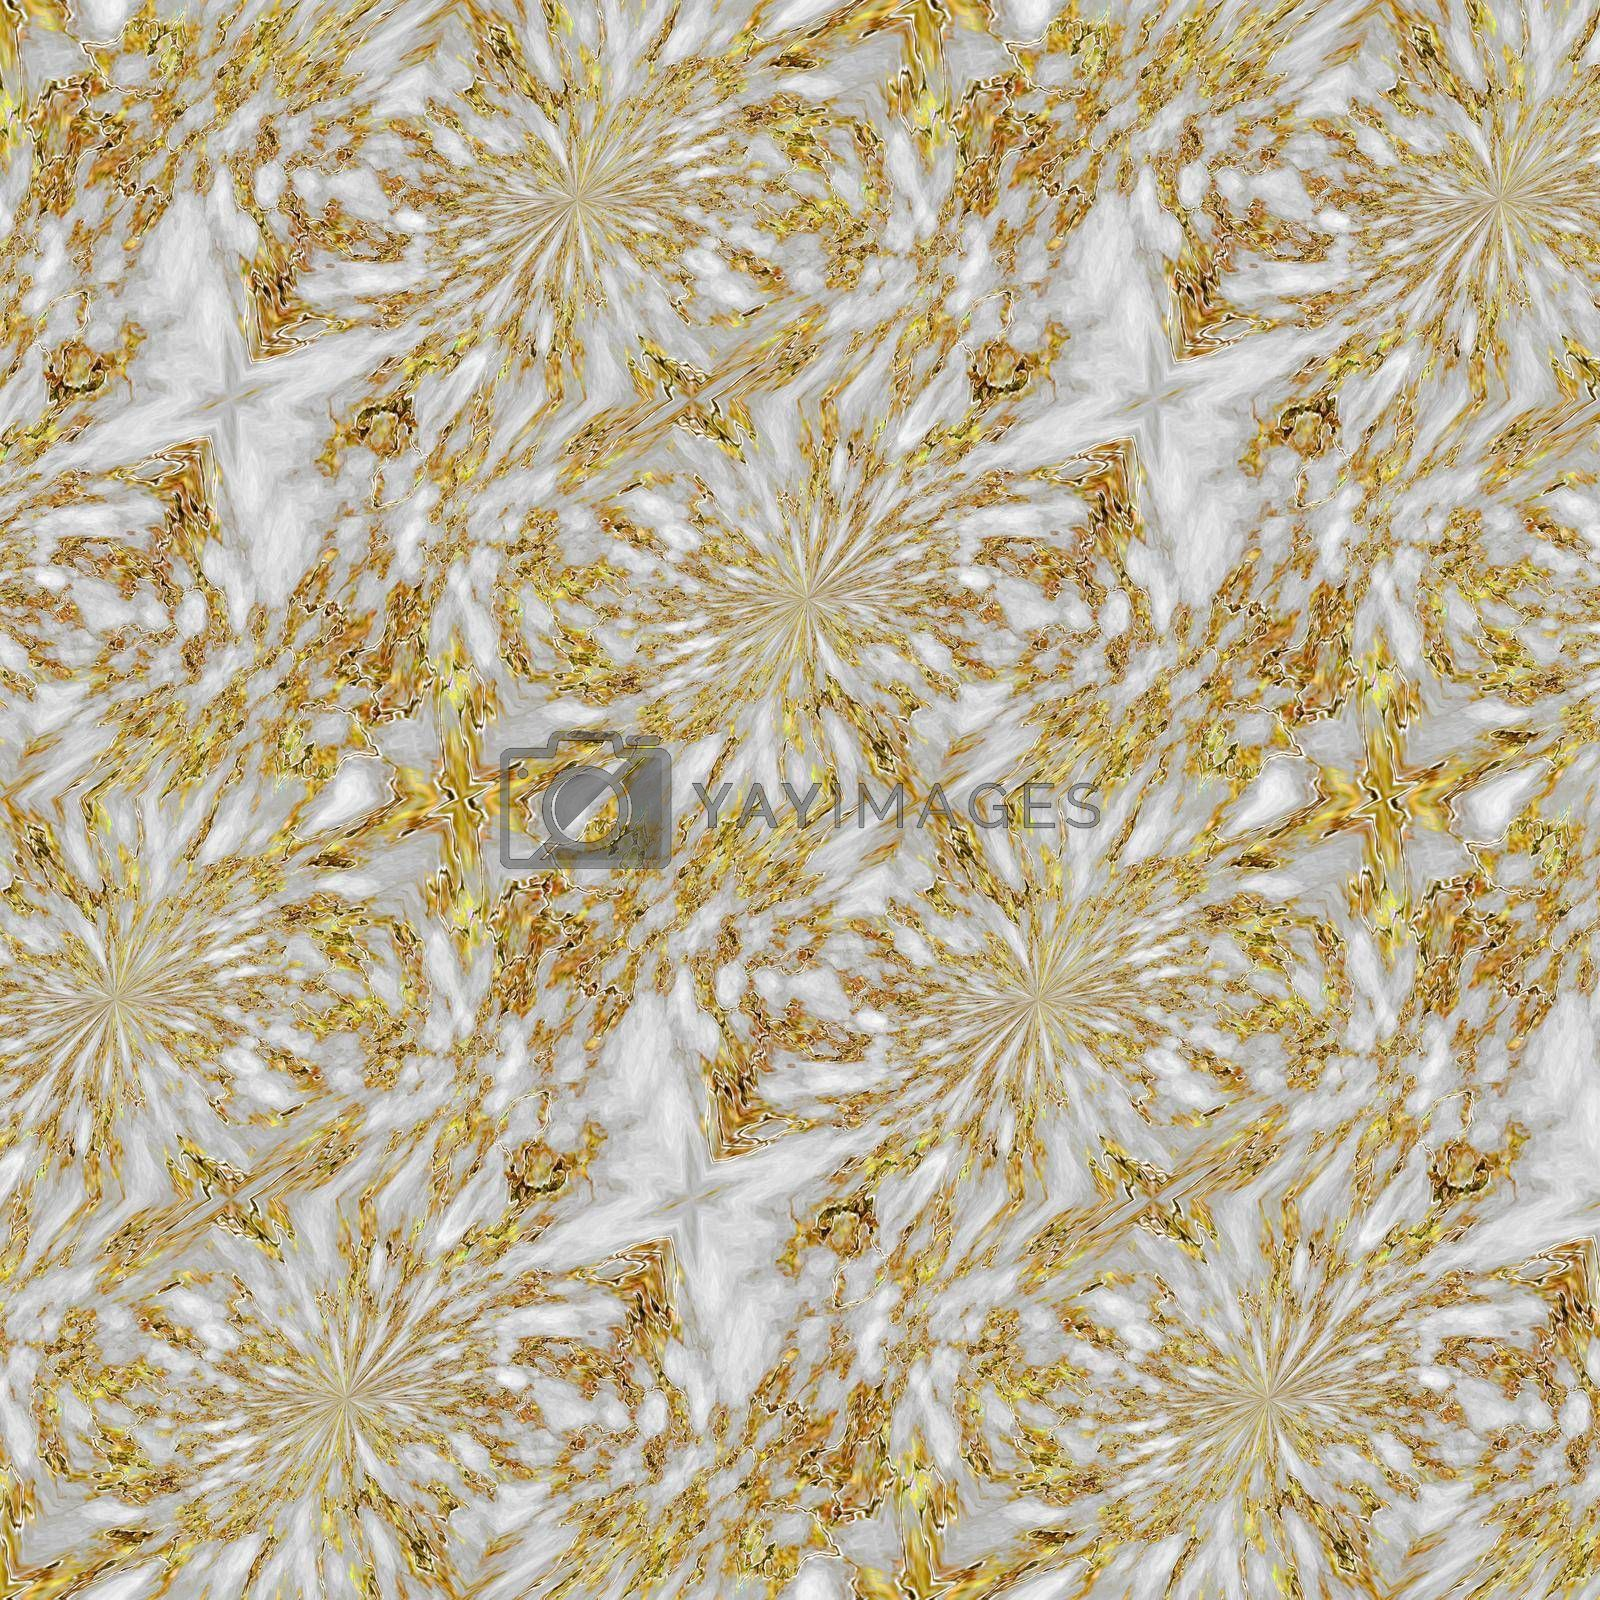 Amazing abstract marble background with flowers texture. Seamless pattern. Golden and white colours. Design for decor, prints, textile, furniture, cloth, digital.